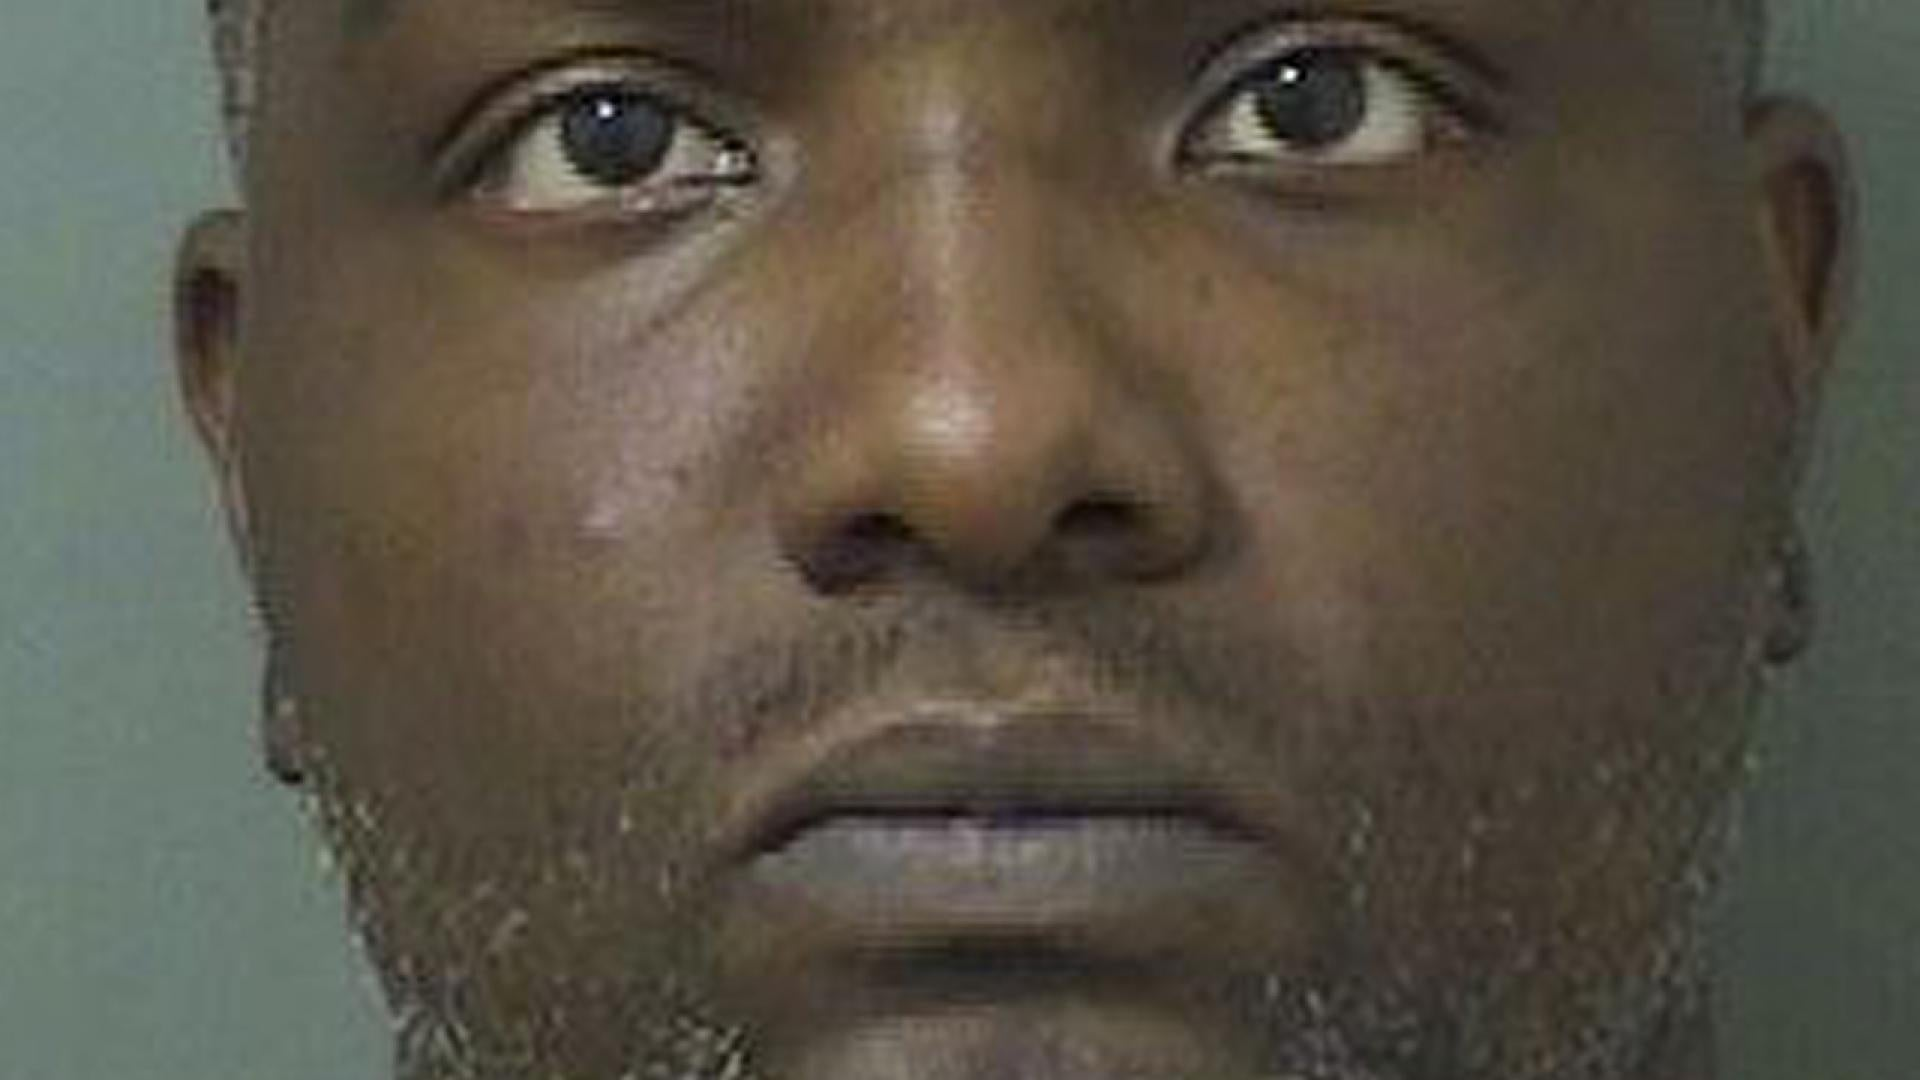 Results from a sexual battery kit yielded a male DNA profile that investigators ultimately connected to Robert Hayes, a 37-year-old West Palm Beach man detectives said they previously suspected in the murders of three other women.